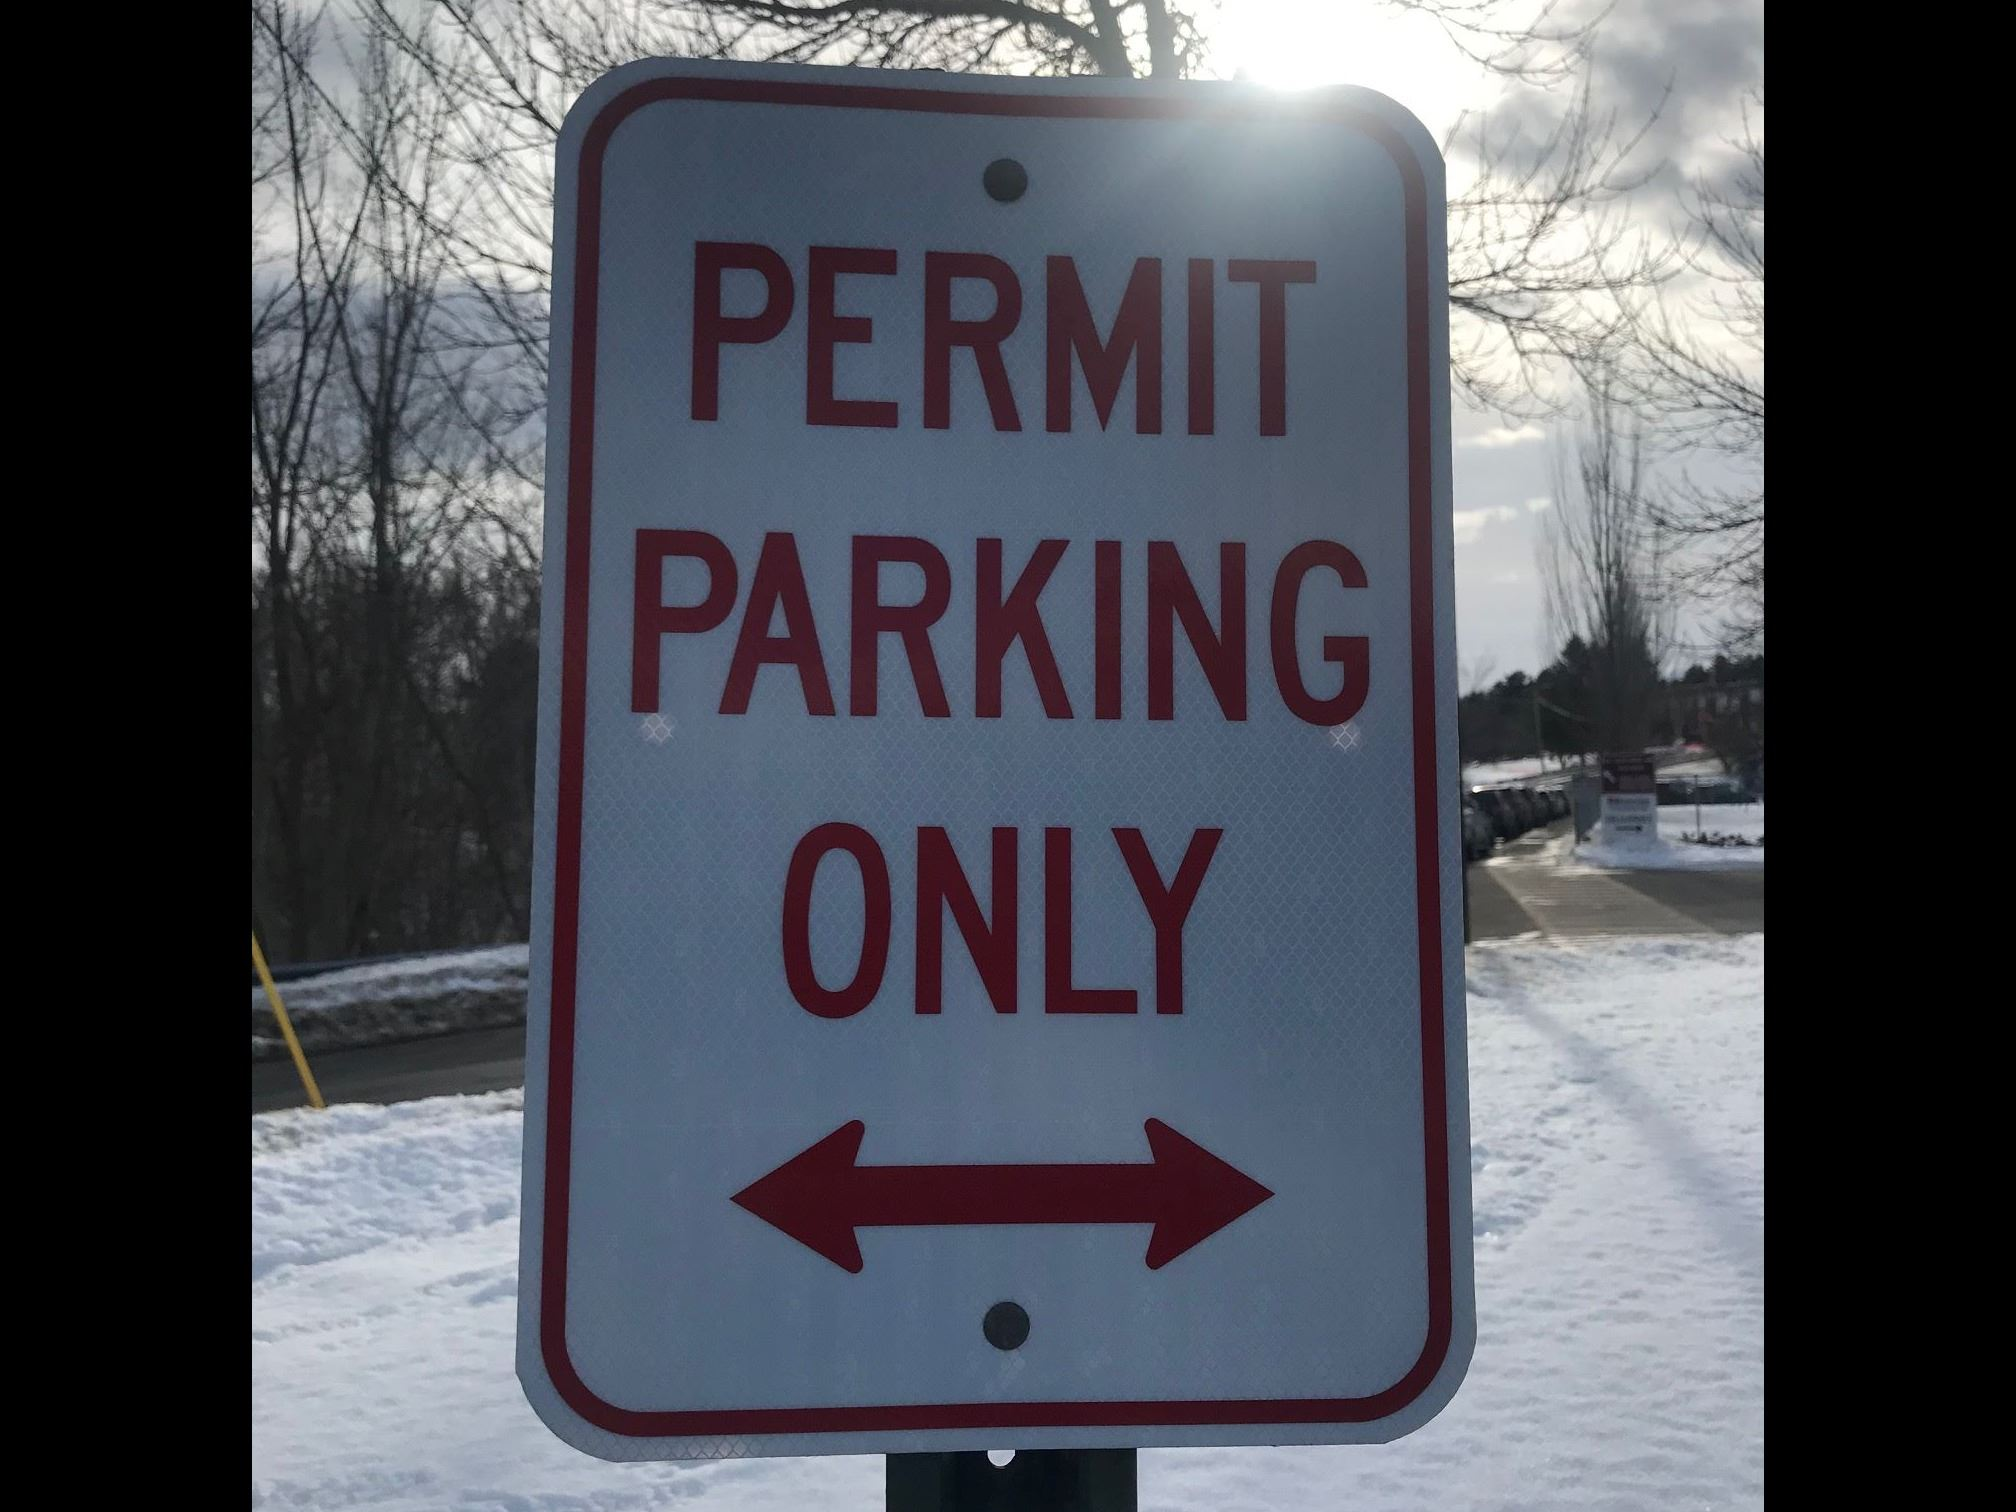 Permit Parking Only